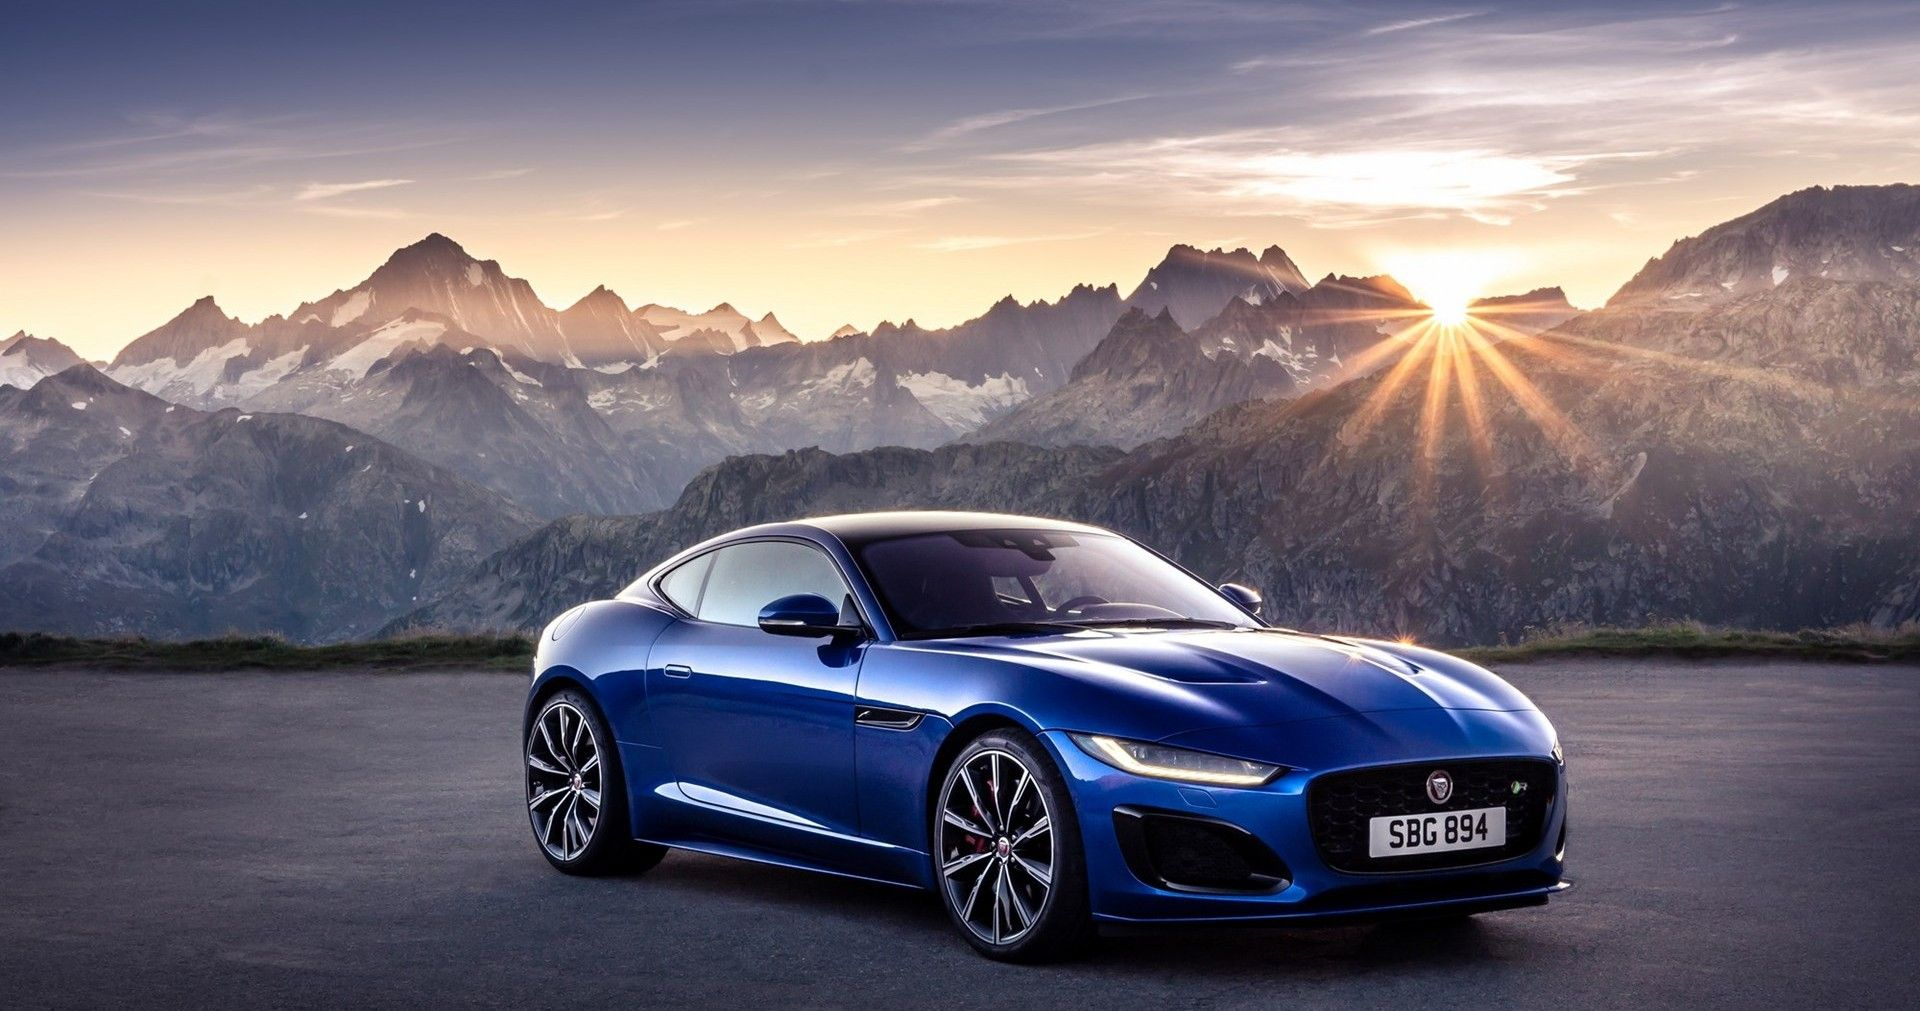 2021 Jaguar F-Type: Costs, Facts, And Figures